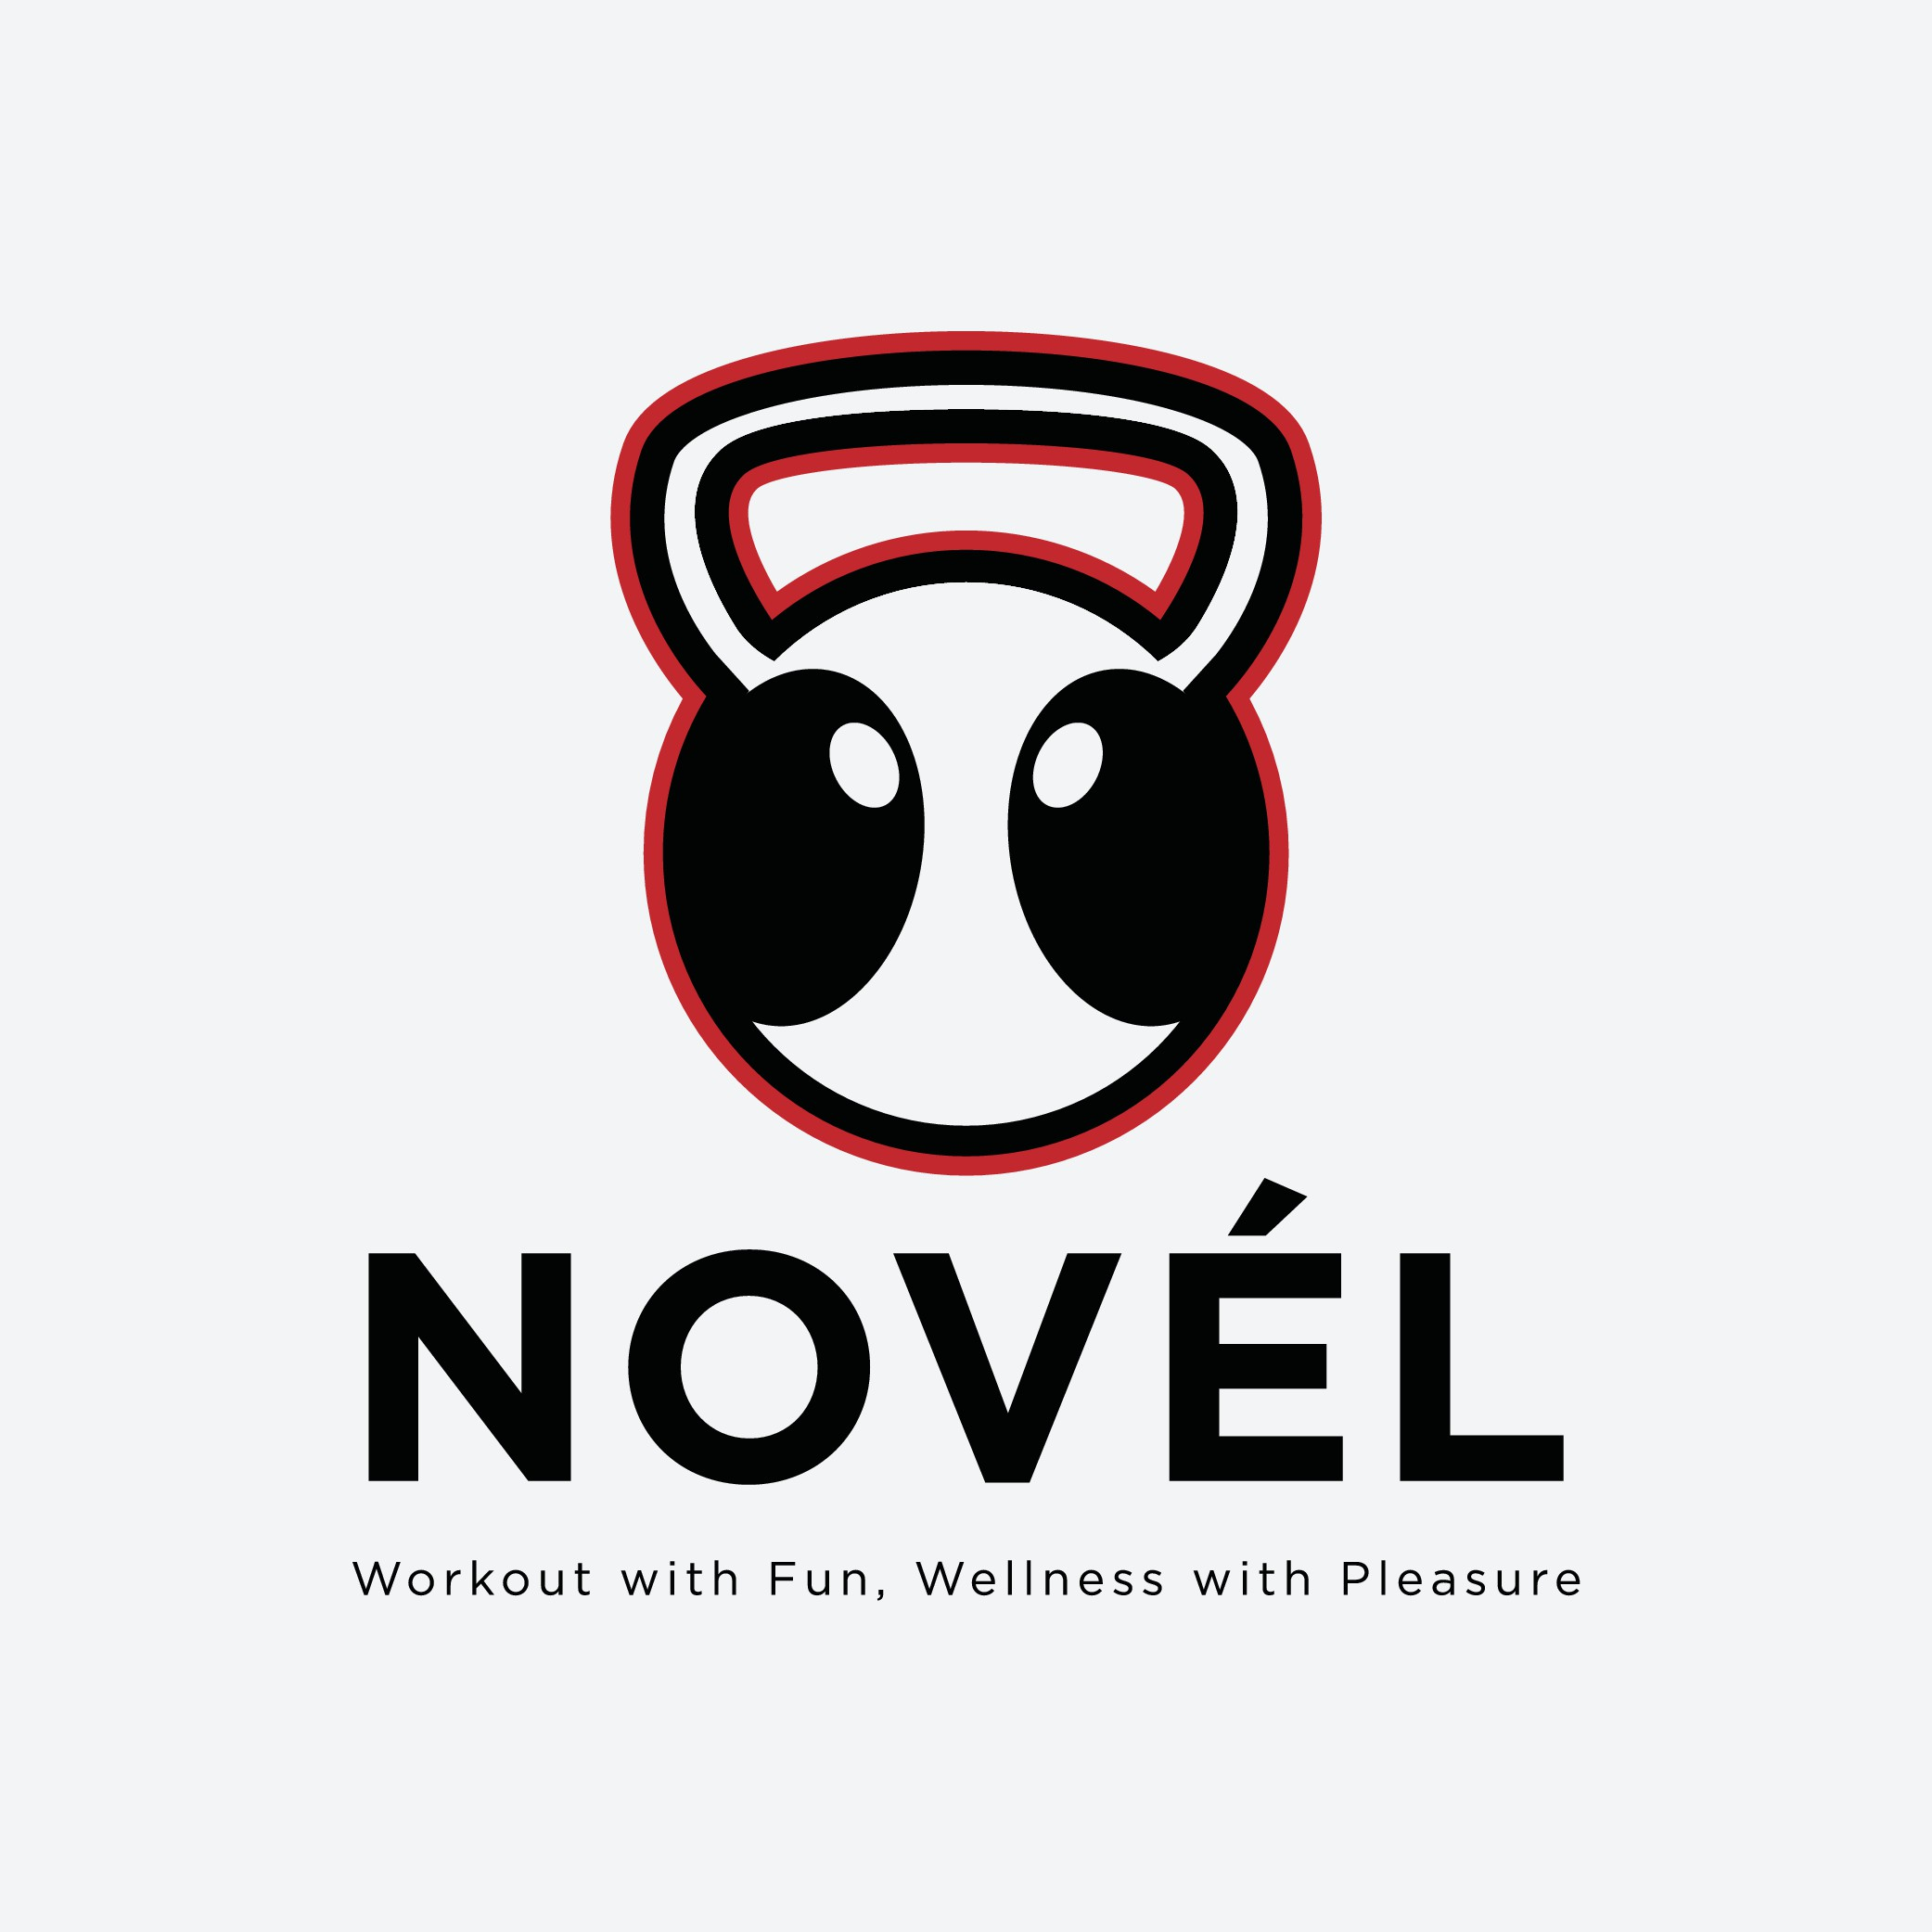 Novél needs fun logo for cricket based high protein food supplements for ethical CrossFitters